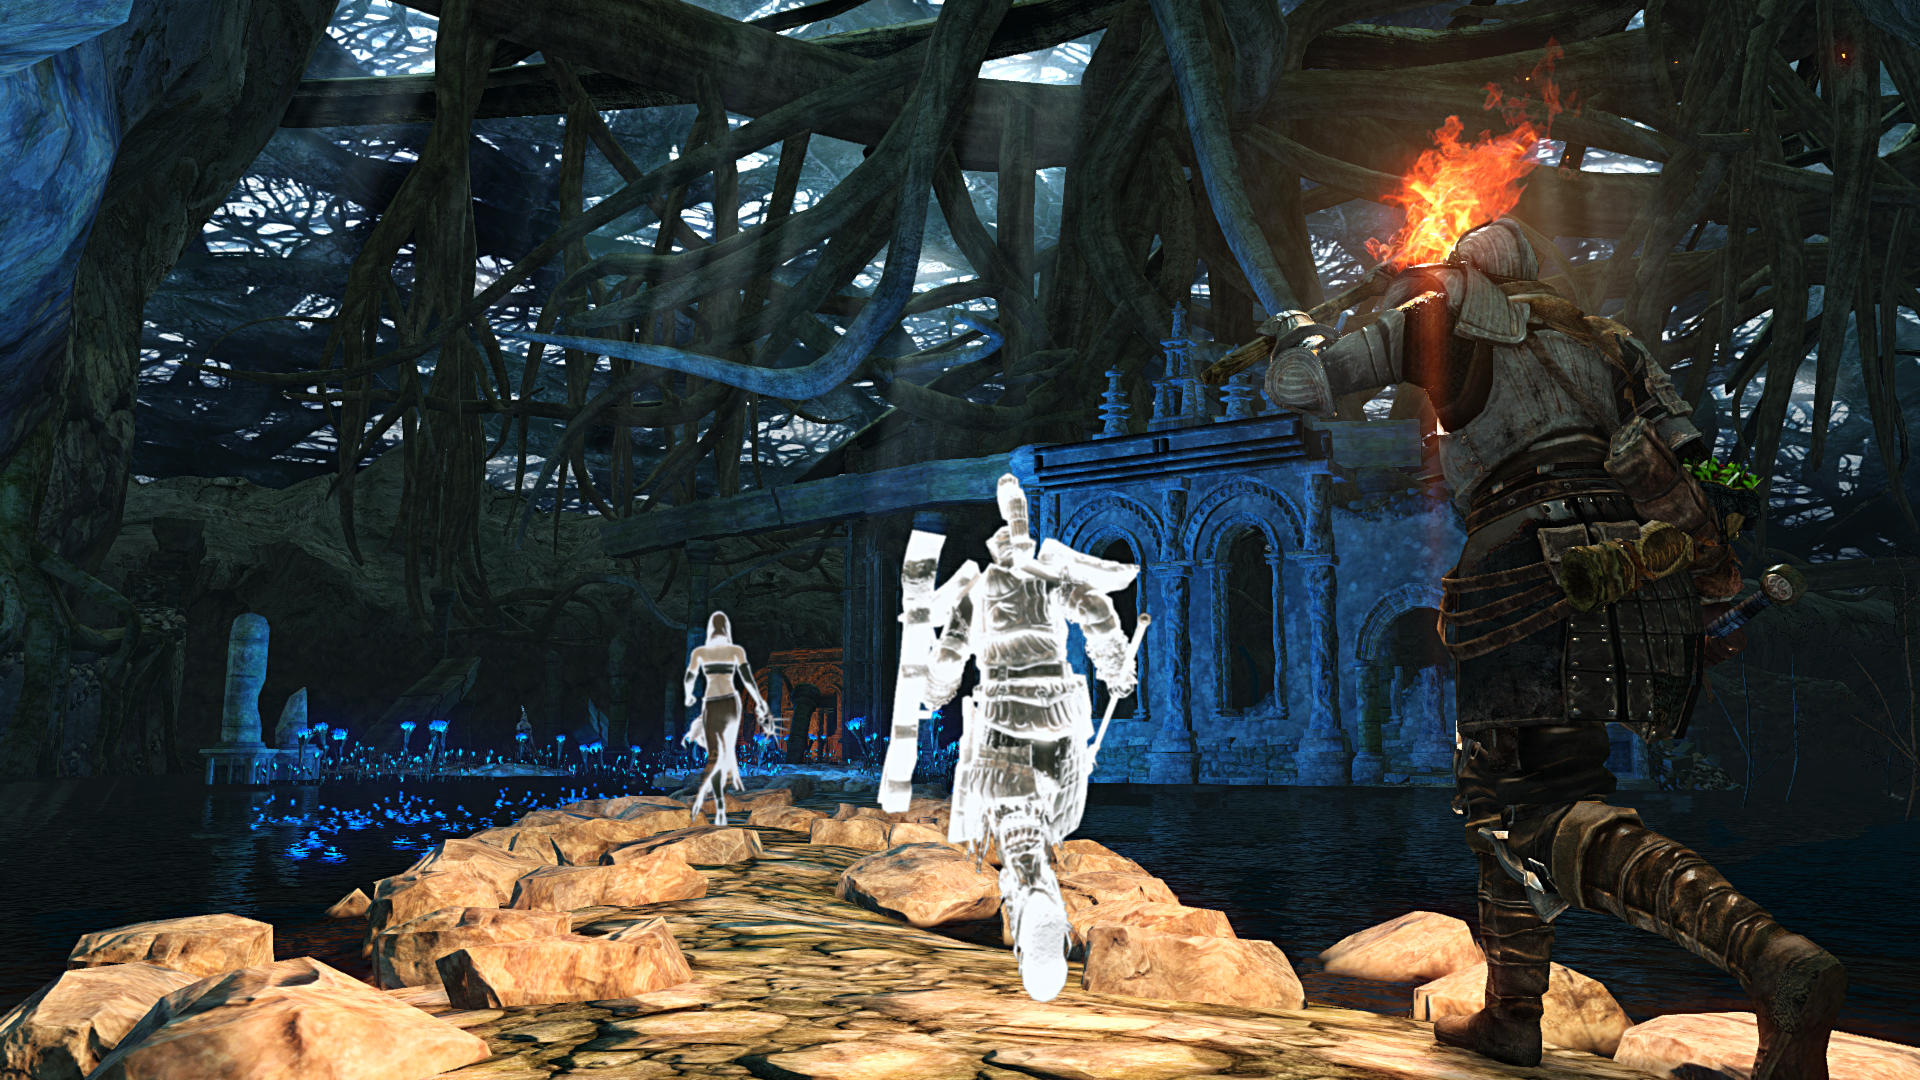 Take A Look At Dark Souls II's Scholar of the First Sin